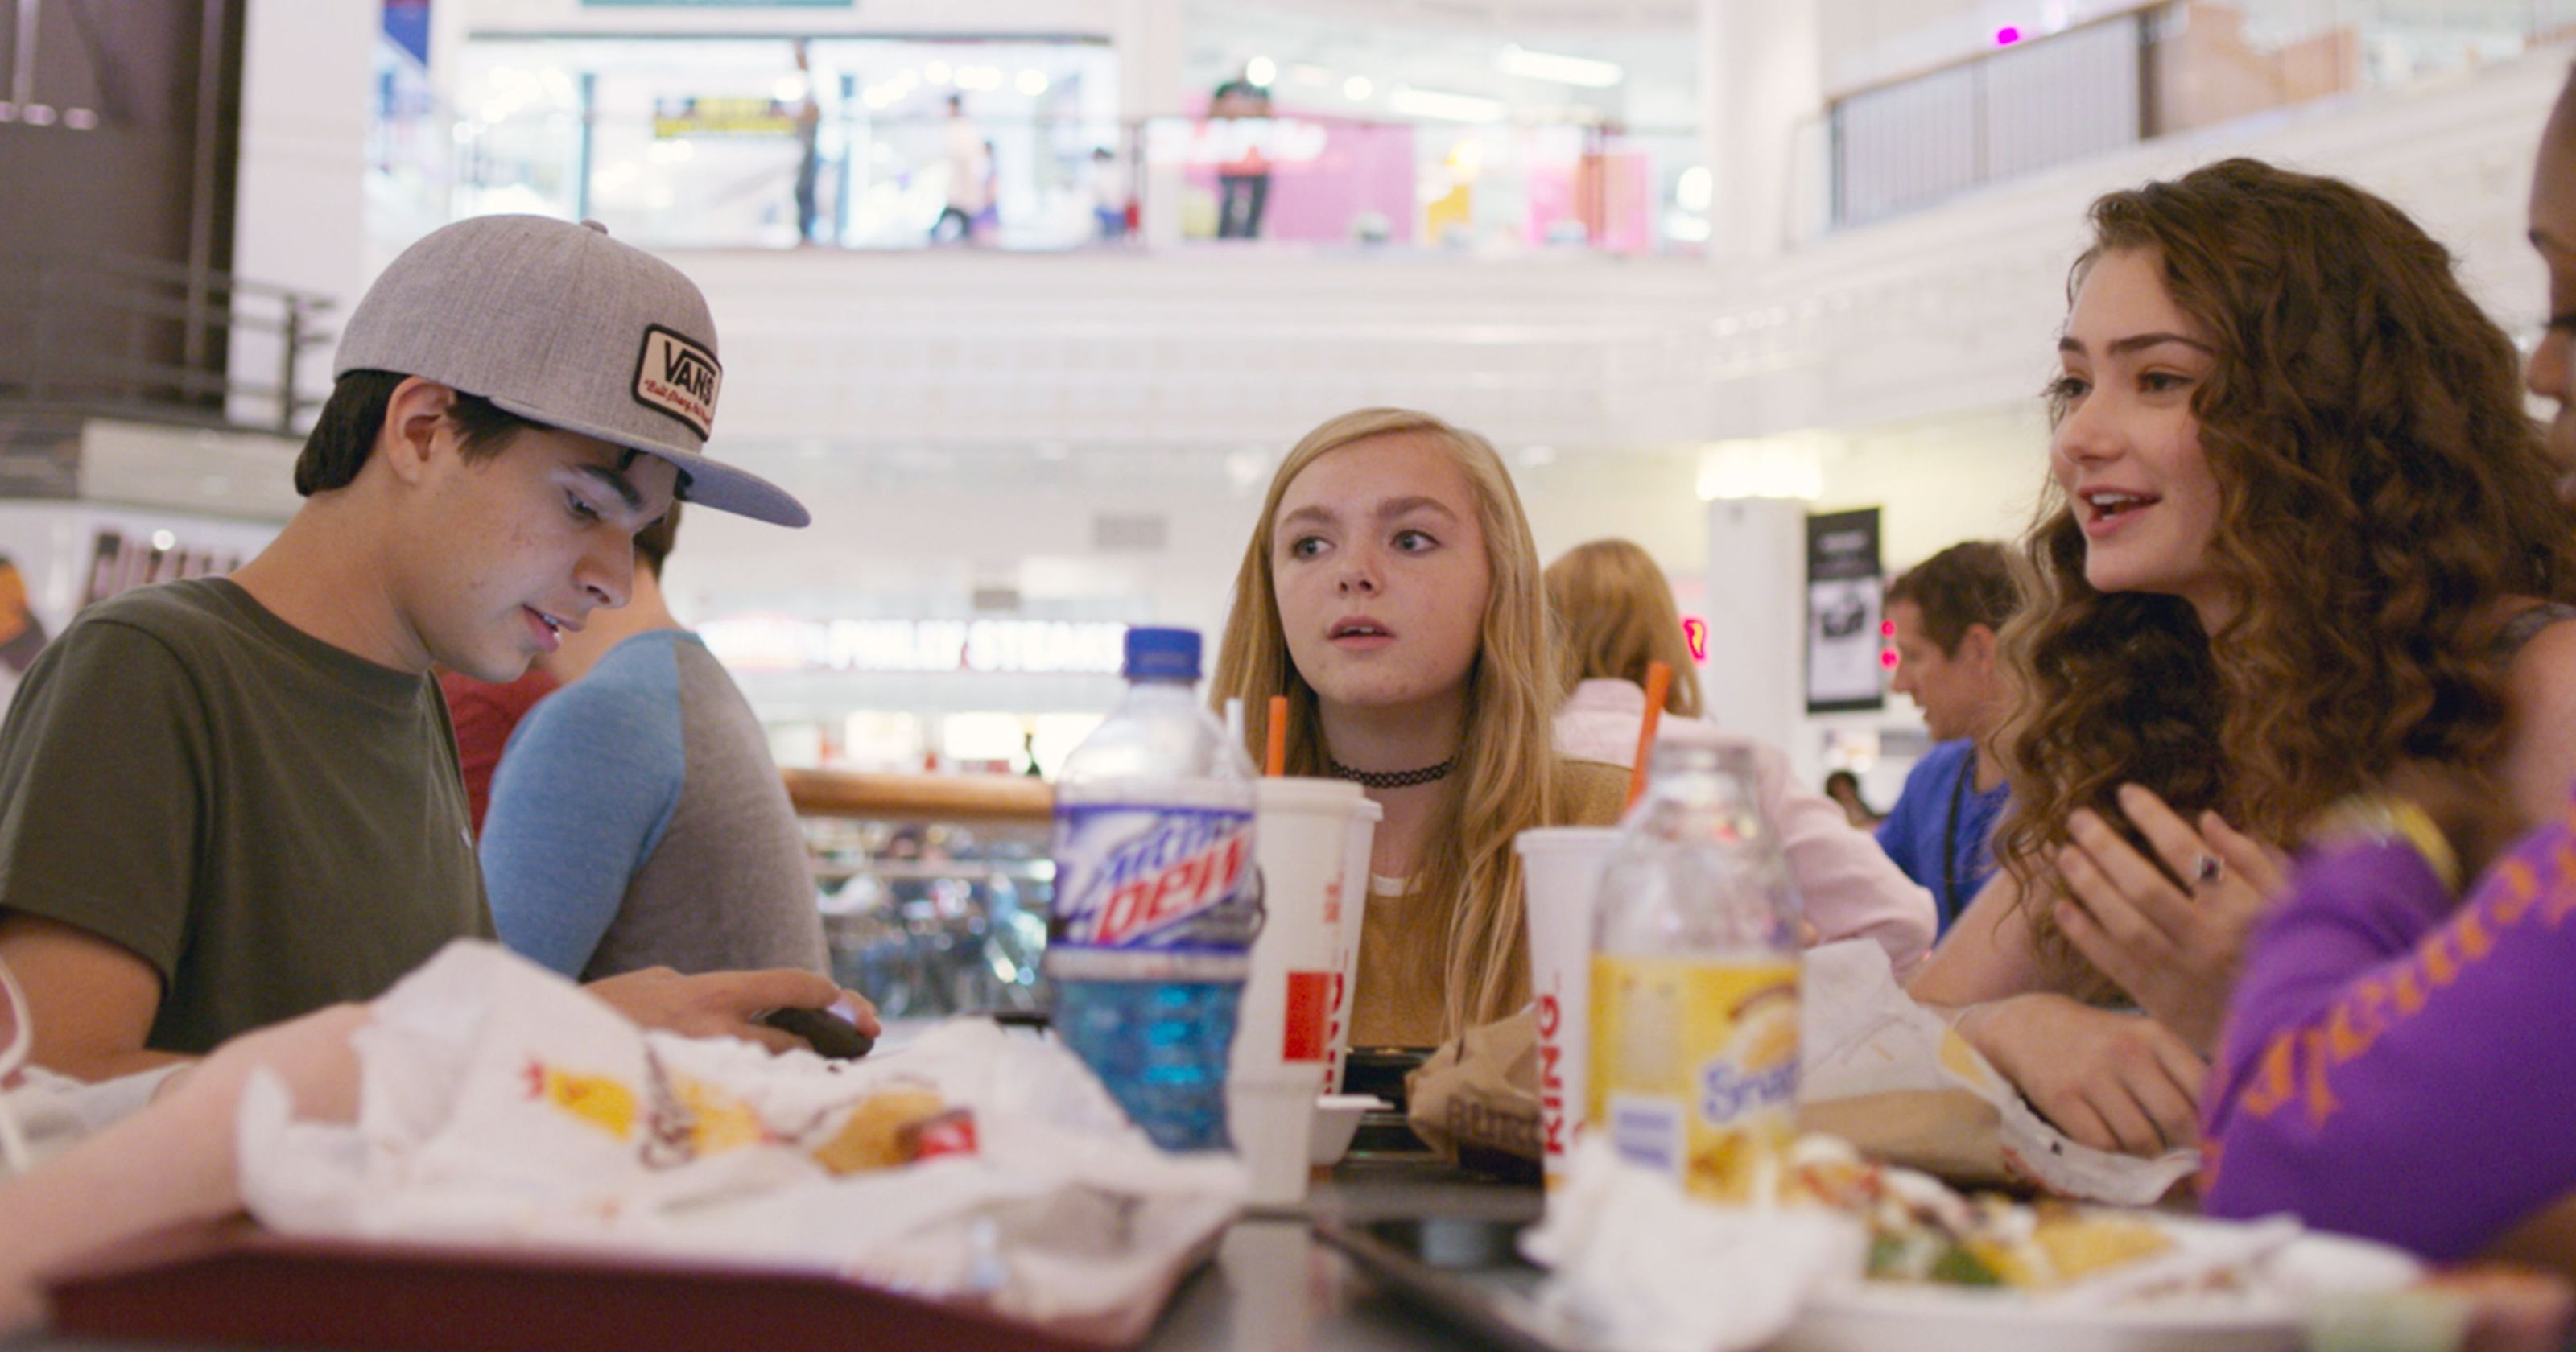 Kayla talking with high school kids in a mall food court.